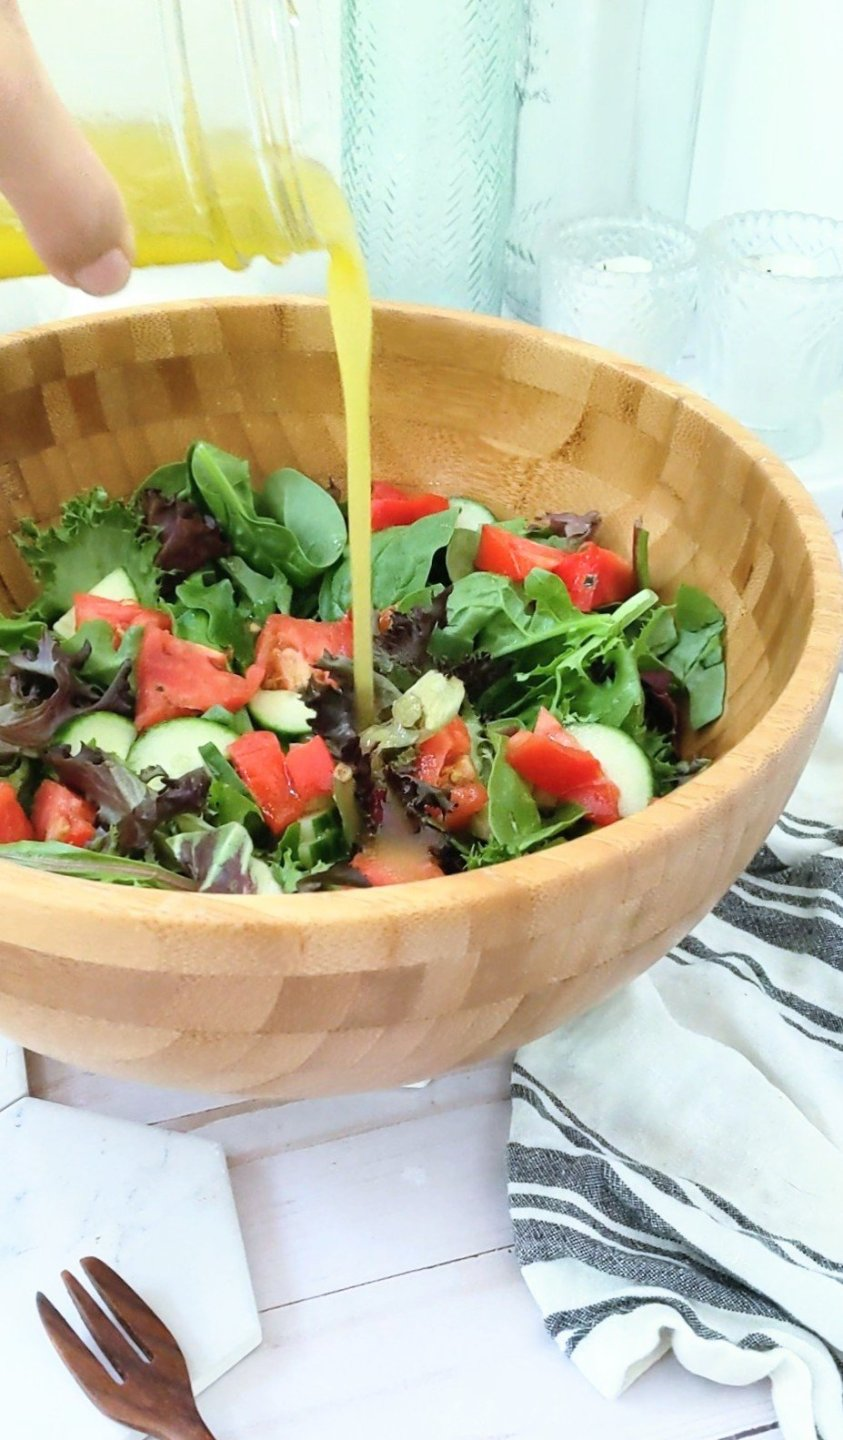 the best apple cider vinaigrette for salads and marinades vegan and gluten free recipes with apple cider vinegar for salads the best salad dressings classic vinaigrette no mustard apple cider vinaigrette without mustard